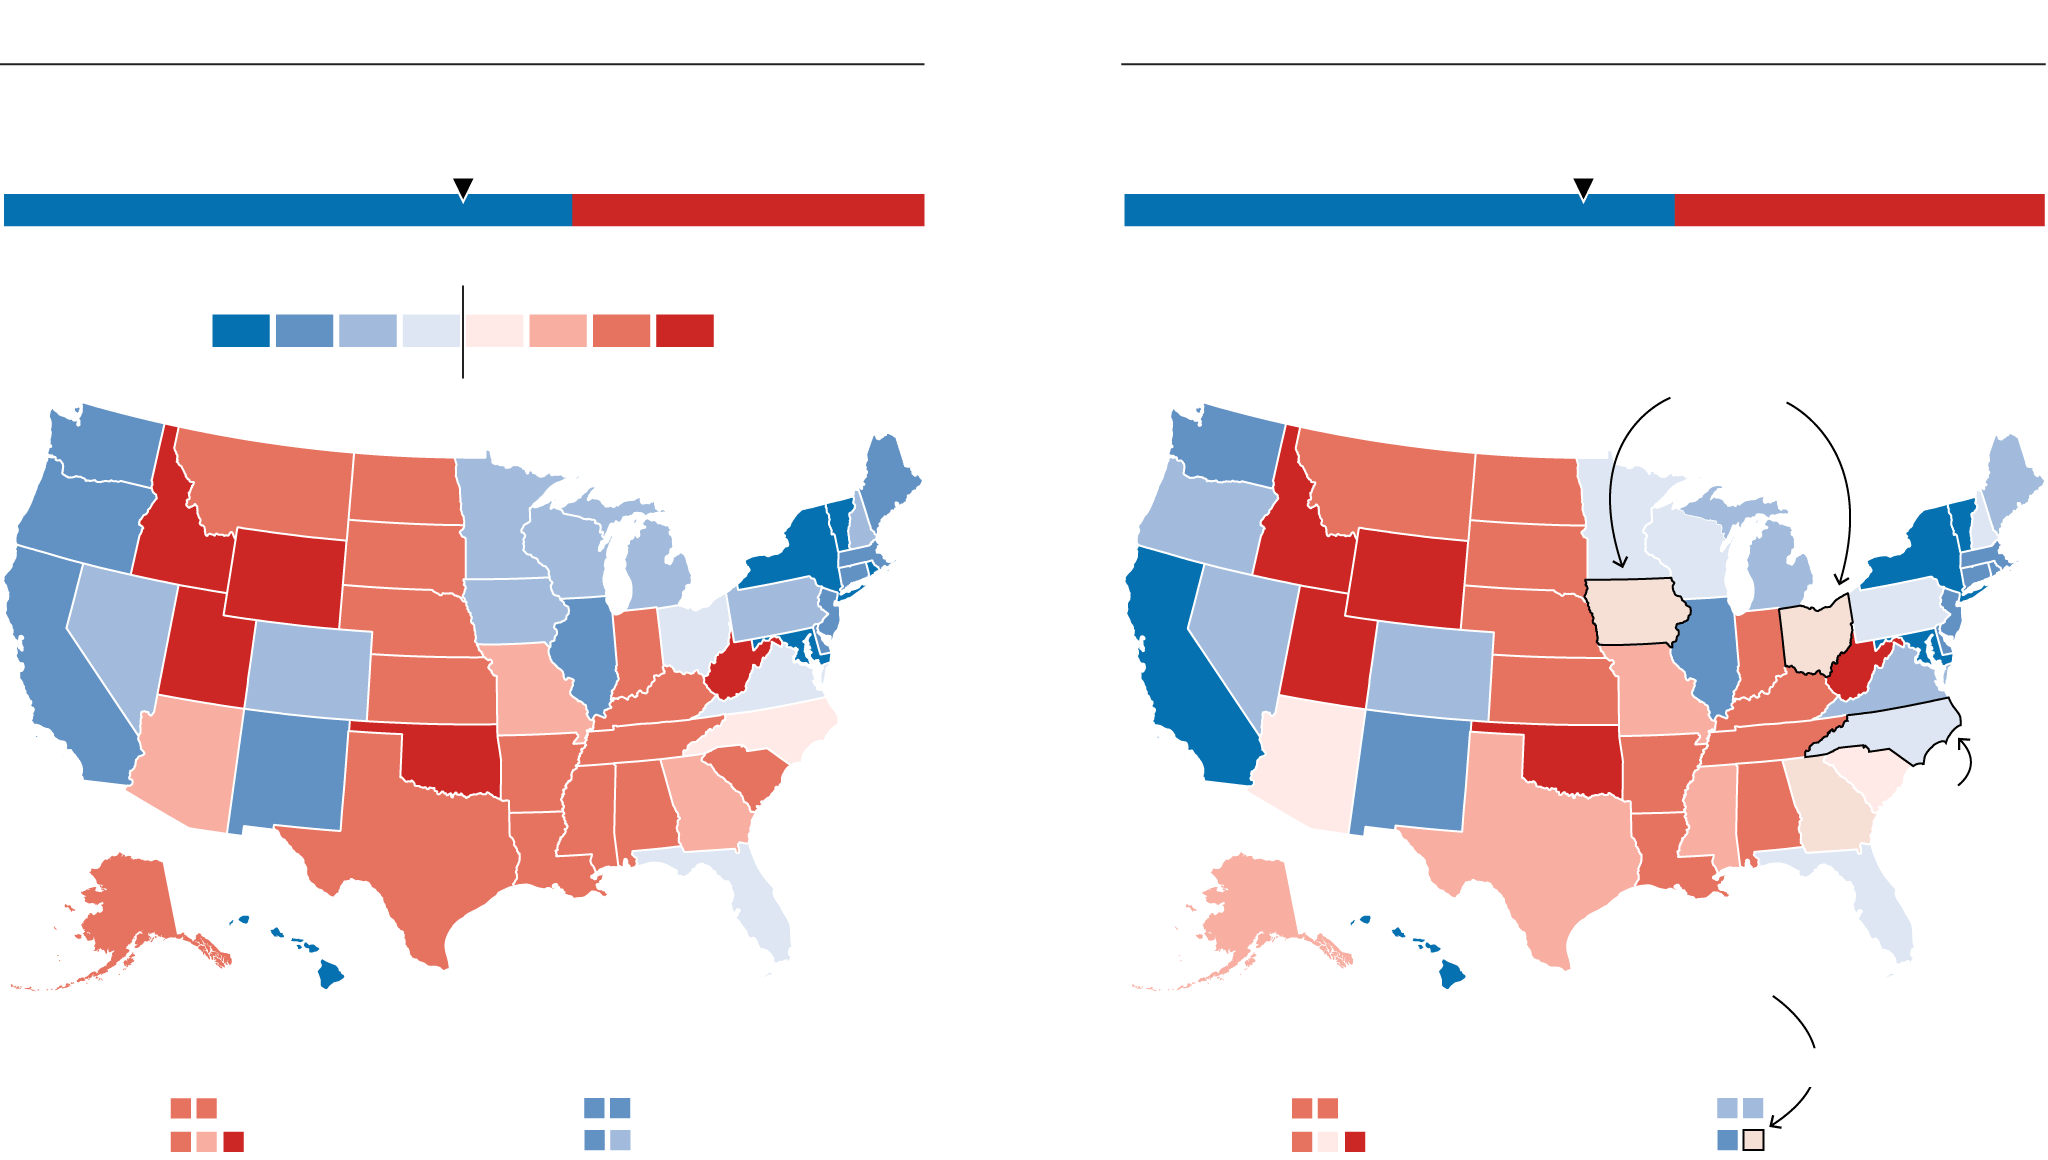 Trump Won States Map.Where Do Clinton And Trump Have The Most Upside Fivethirtyeight